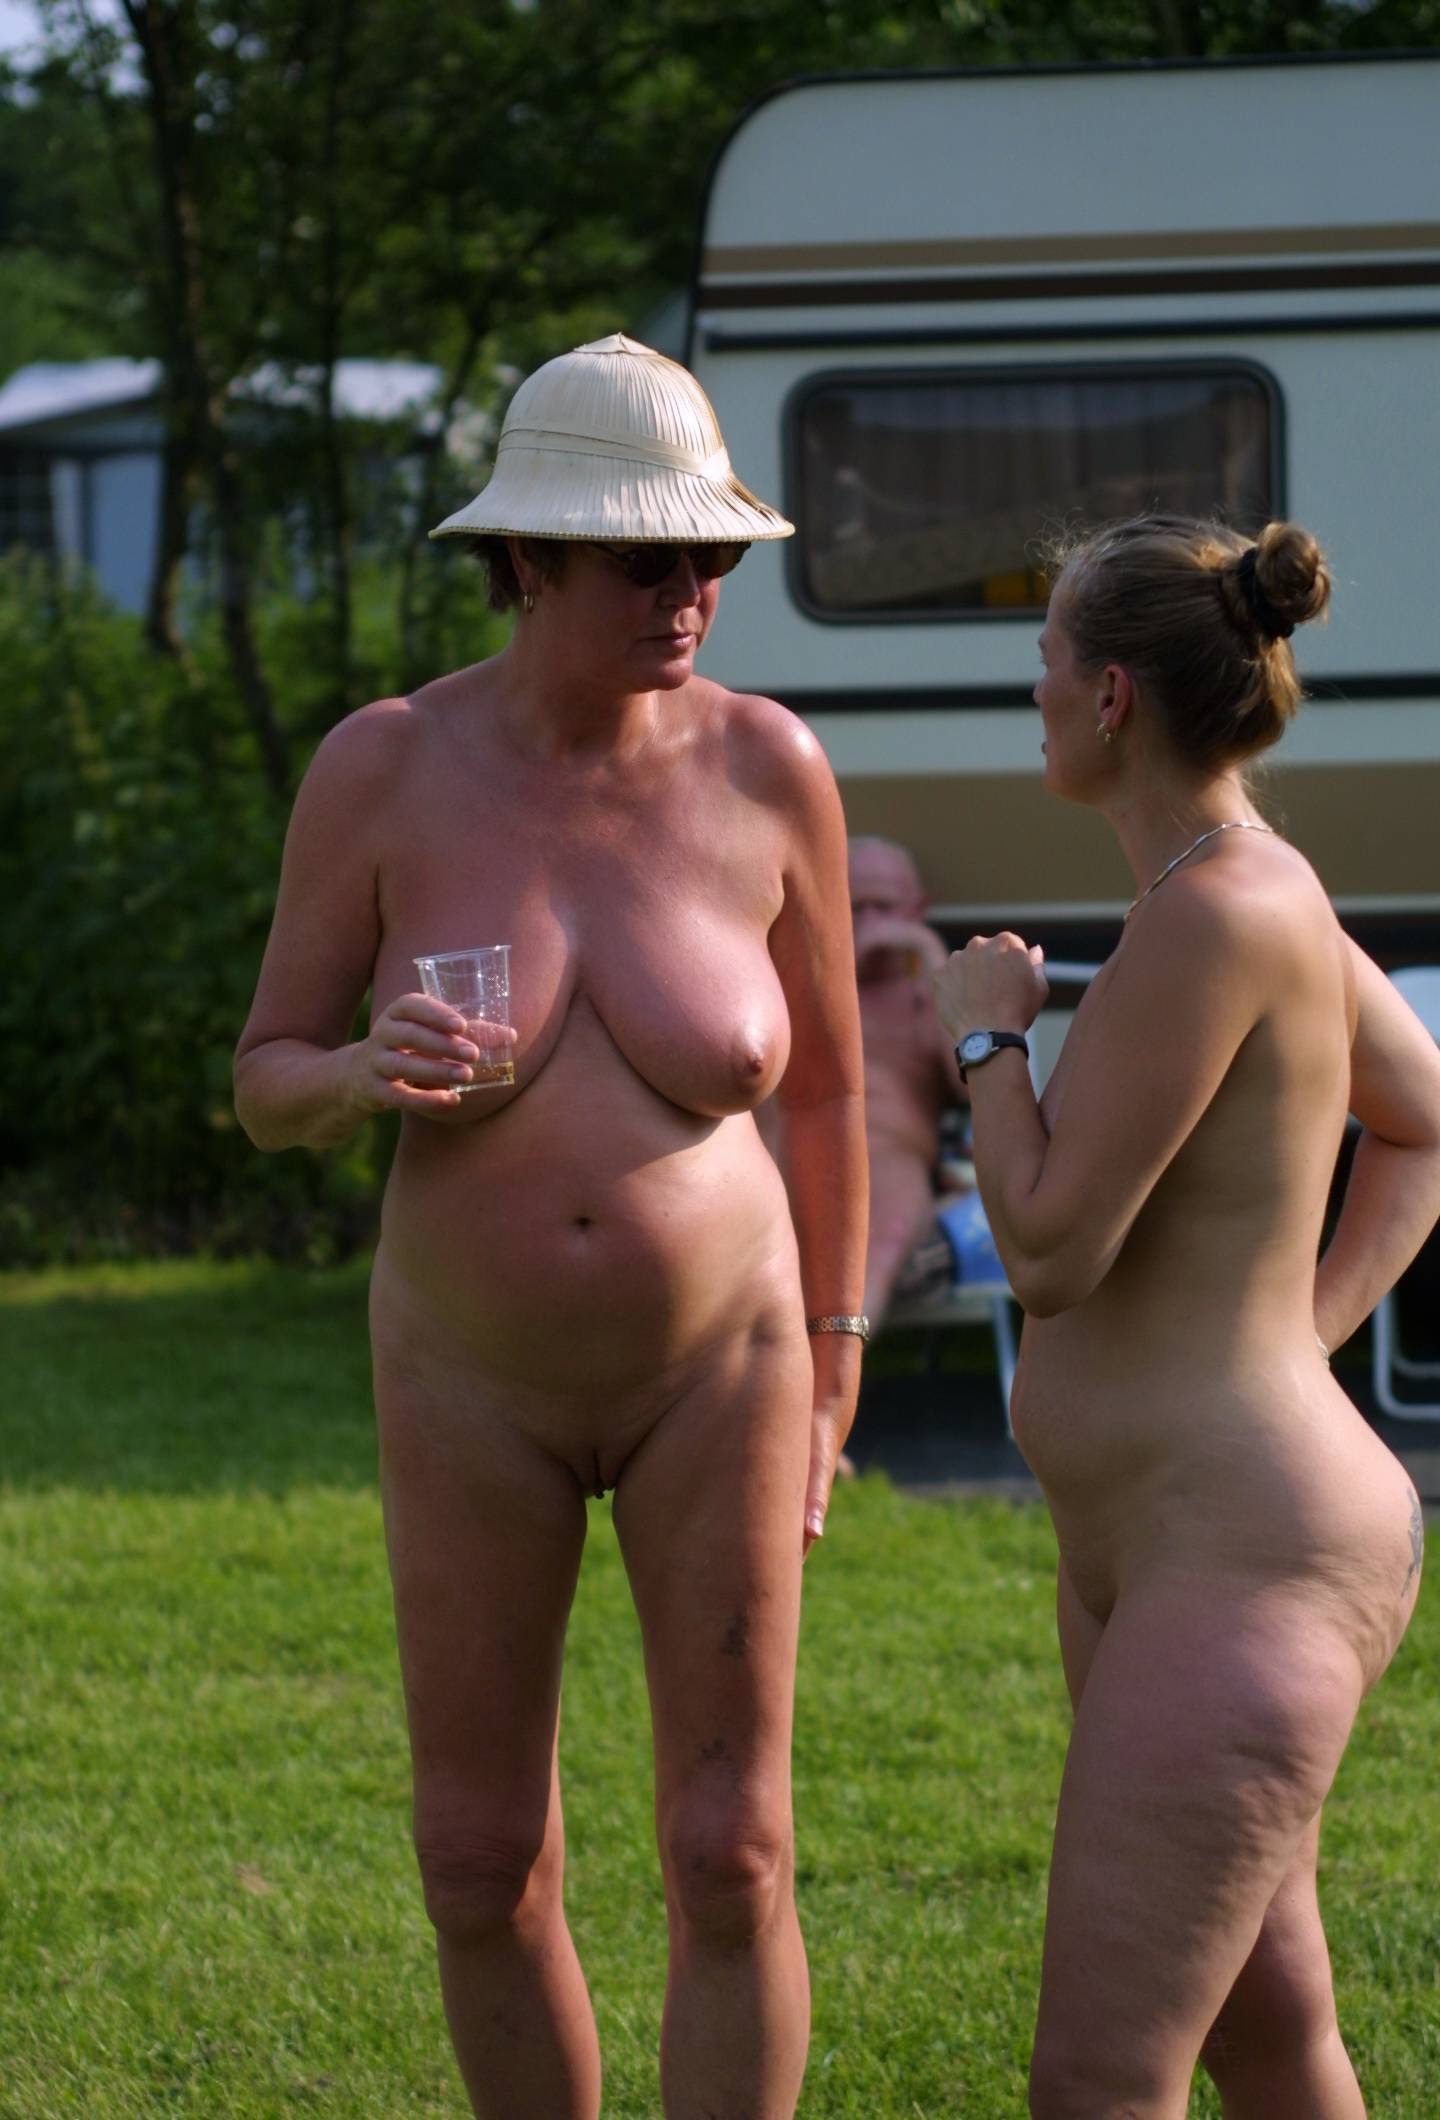 Nudist Pictures Holland Show and Relaxation - 1